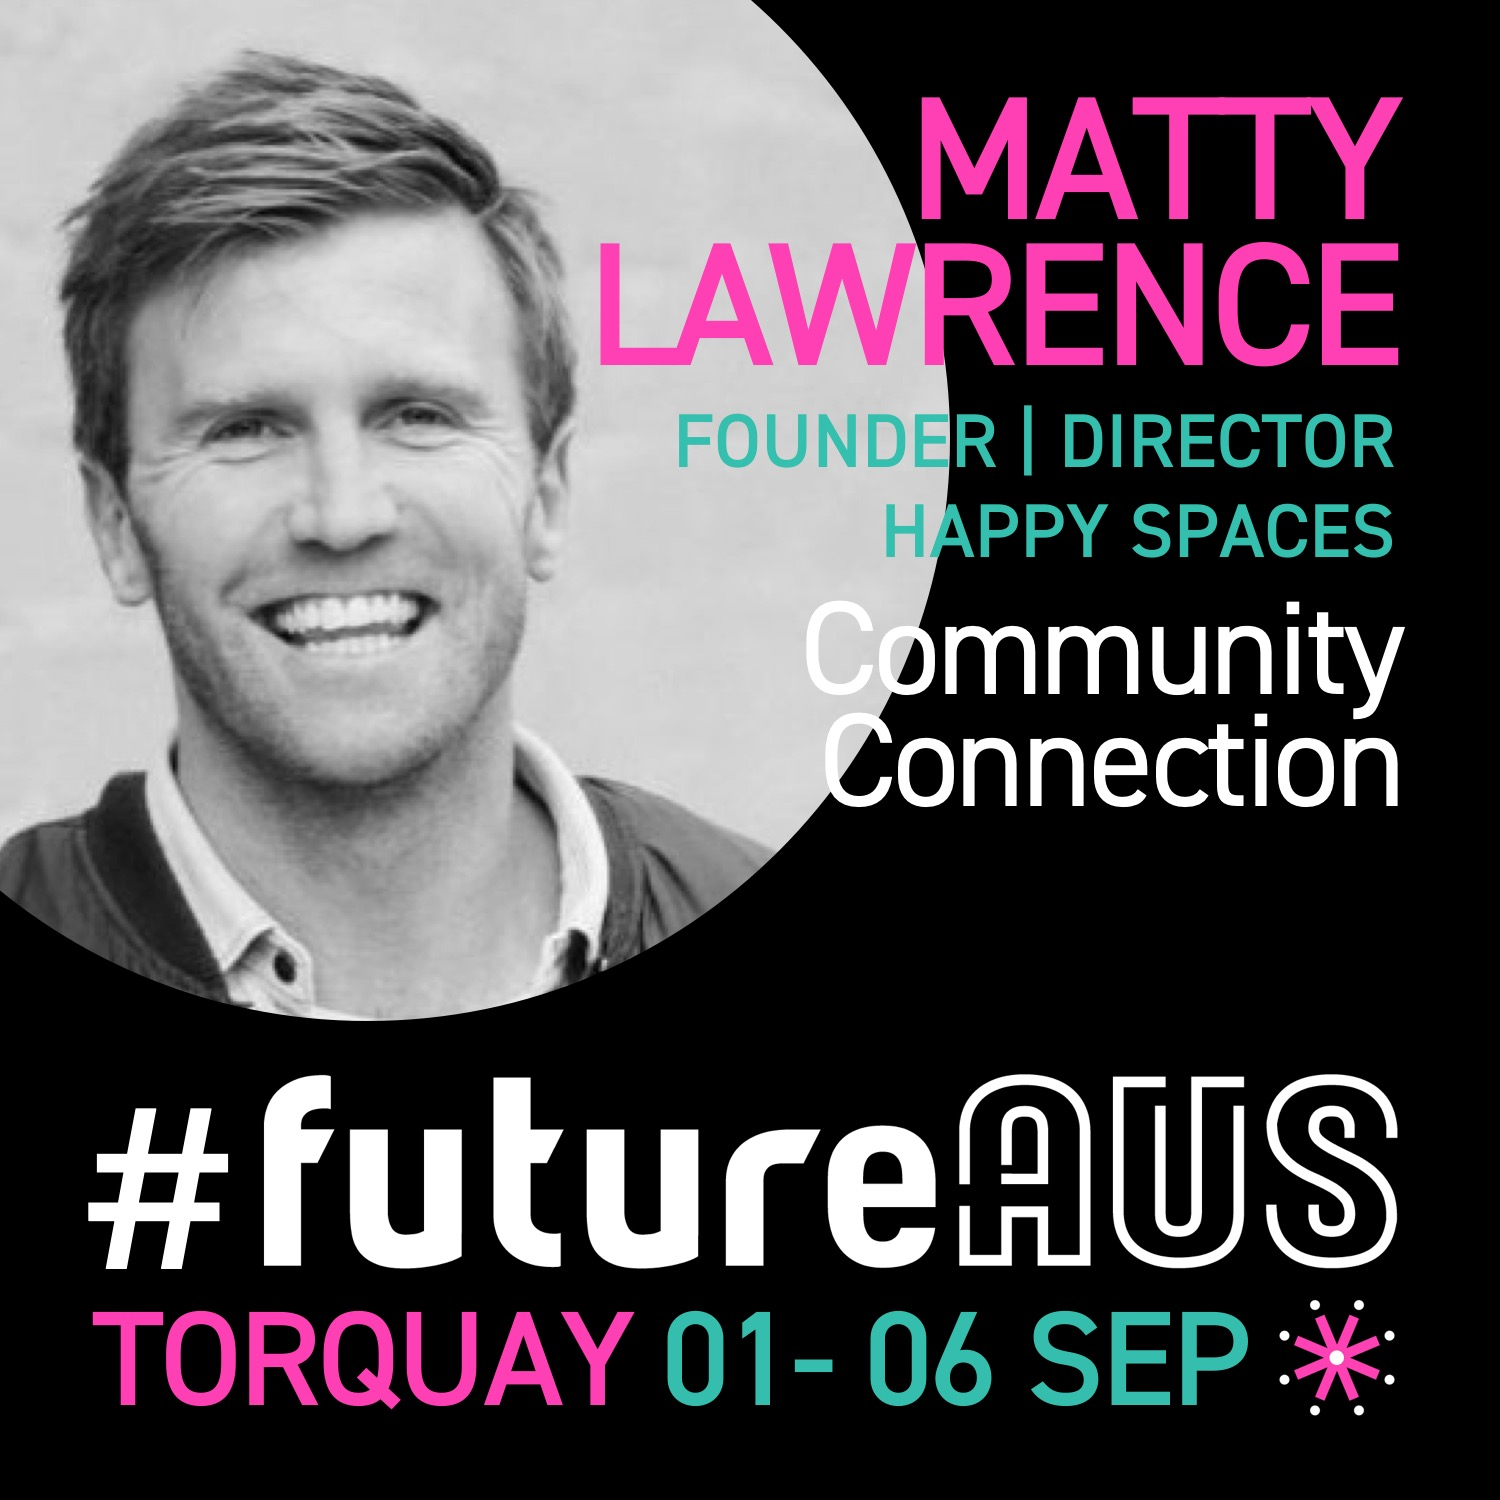 "Matty Lawrence  is a community maker, purpose finder, wellbeing champion and founder of Happy Spaces, a growing ecosystem of beachside suburban and regional B-Corp coworking and community spaces (Hampton, Black Rock and Torquay) with a focus on cultivating local connections, belonging and wellbeing. Happy Spaces are ambassadors for Gross National Happiness, a holistic and sustainable approach to development, which balances material and non-material values with the conviction that humans want to search for happiness. This year Matty will lead a group on a two-week Himalayan pilgrimage to the Economics of Happiness conference, amidst the awe-inspiring landscape and community of Ladakh in India. Matty will share his insights on  ""the worlds greatest untapped resource"" (community connection)"